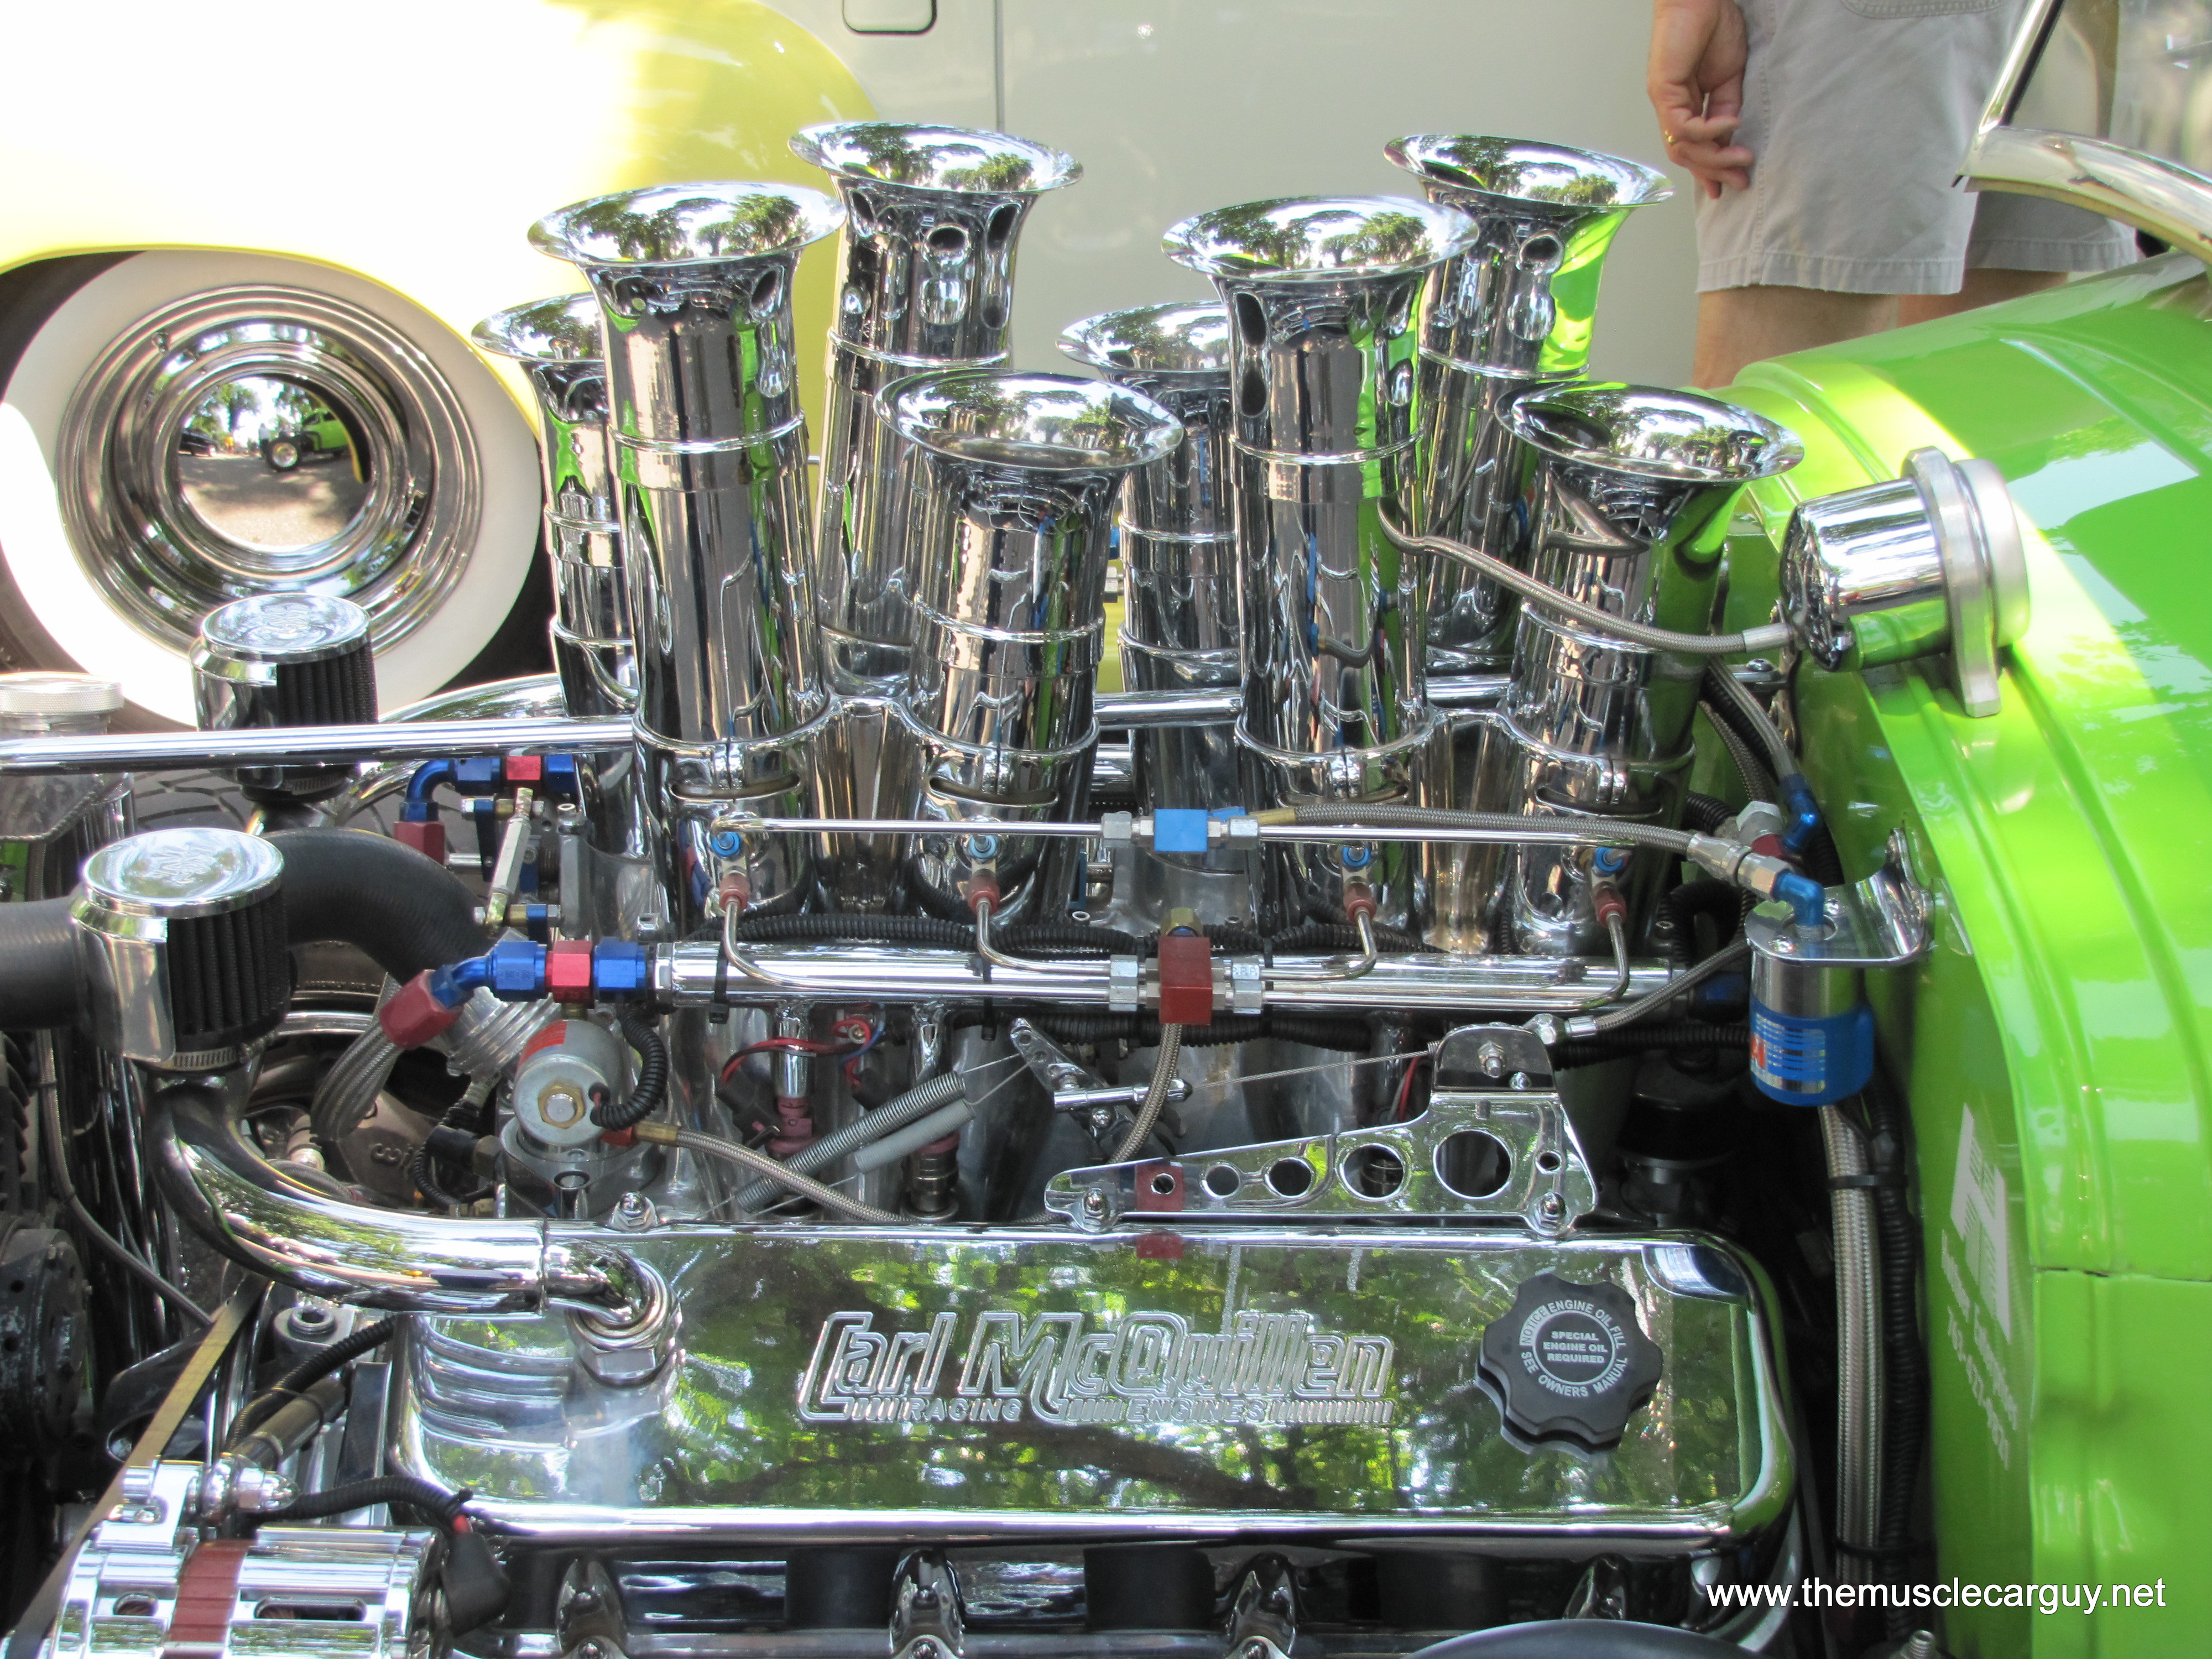 Car engine basics part 1, the overview - themusclecarguy.netMuscle Cars